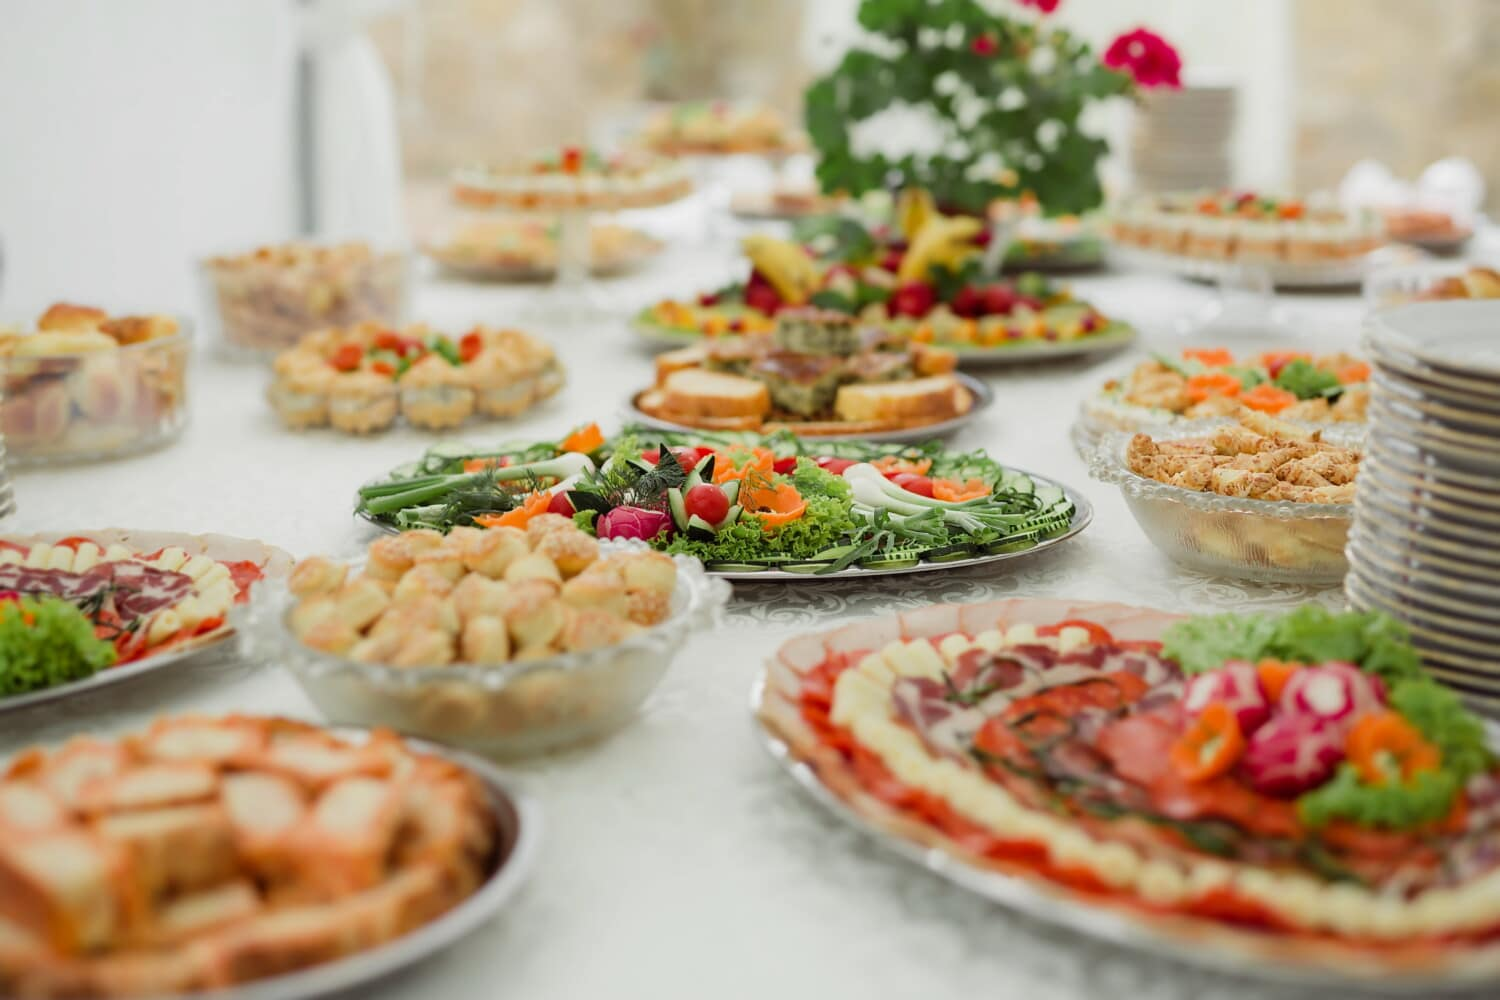 buffet, baked goods, appetizer, salad, restaurant, meal, delicious, lunch, dish, food